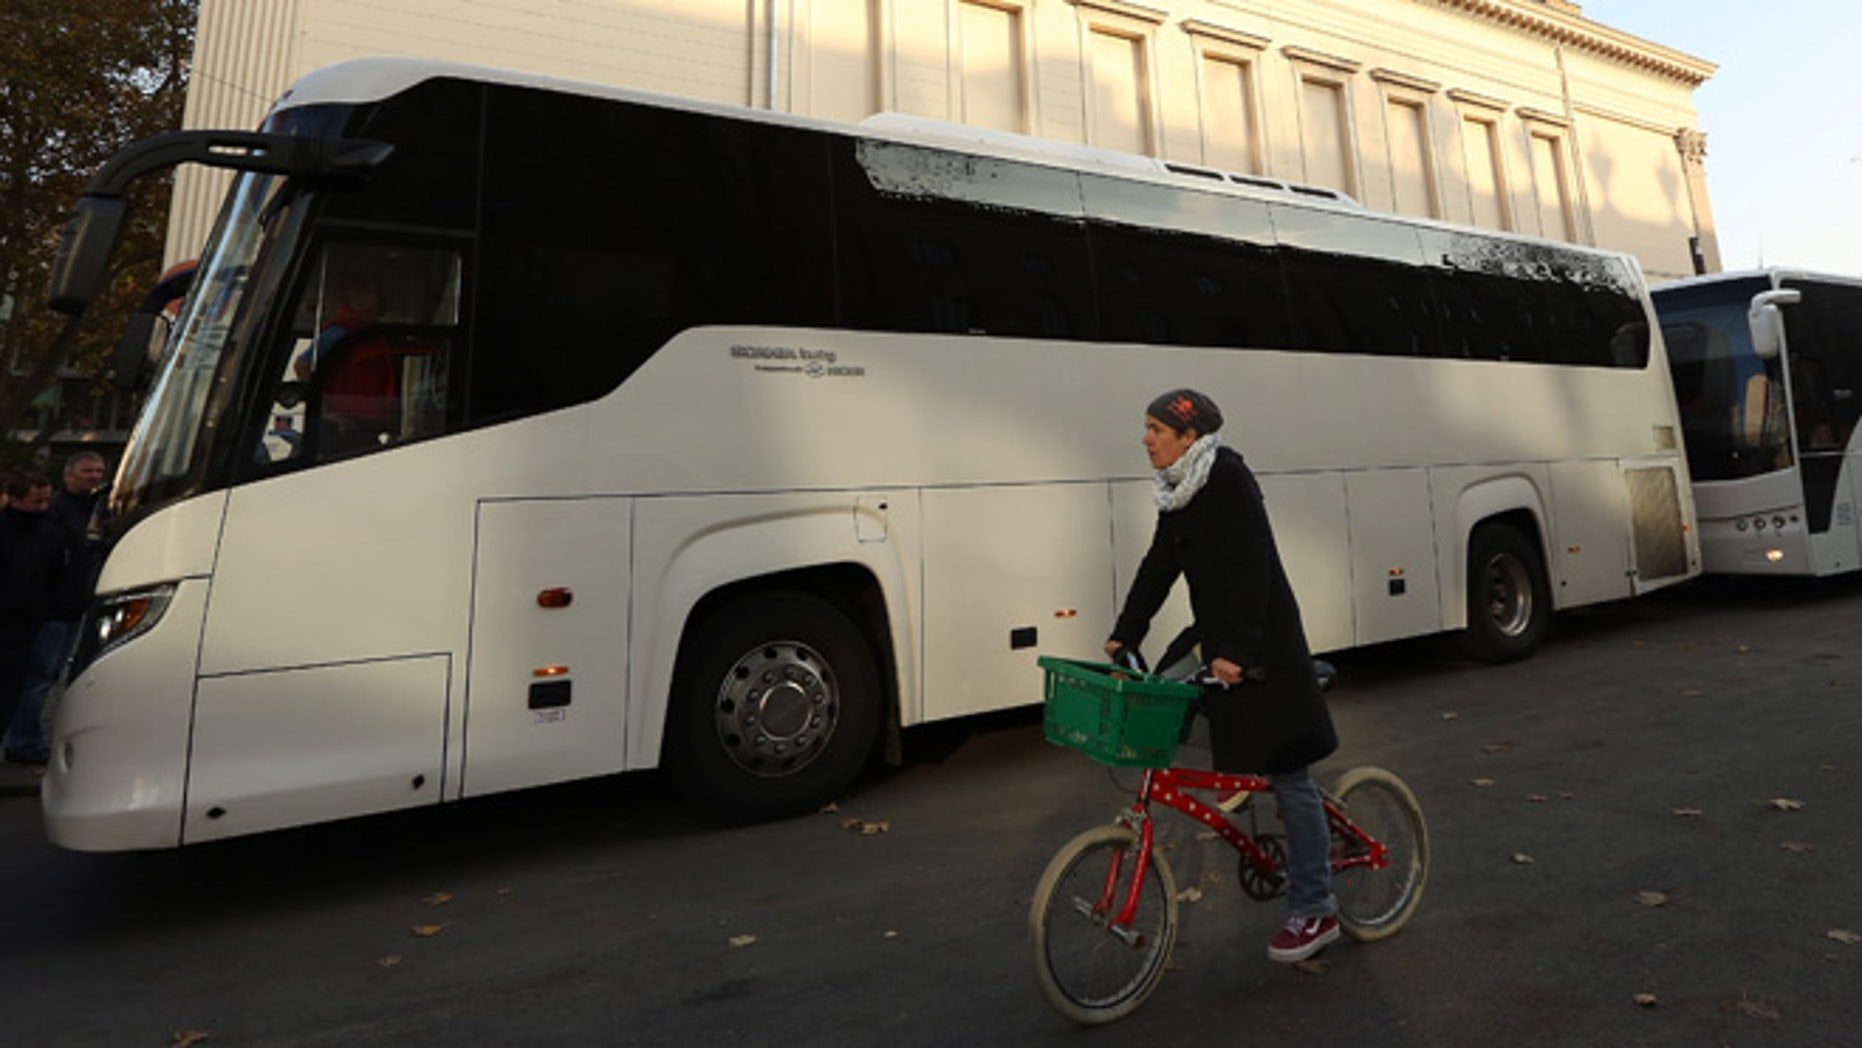 BERLIN, GERMANY - NOVEMBER 07: Two buses full of activists traveling from Berlin to the Mediterranean to 'Tear down the European Wall,' or cut down portions of the European Union's border fence, prepare to depart from outside the Gorki Theater on November 7, 2014 in Berlin, Germany. Amidst ongoing celebrations for the 25th anniversary of the Fall of the Berlin Wall, activists from the group Center for Political Beauty (CPB, or Zentrum fuer Politische Schoenheit, ZPS, in German) claim to have removed 14 white crosses from the city center placed in memory of some of the victims killed trying to cross from East to West Berlin during the Cold War, a protest designed to call attention to the activists' perceived hypocrisy found in fortifying the border preventing entry for refugees into Europe while celebrating the fall of the notorious one in Berlin a quarter of a century ago. The artist collective claims to have given the crosses to refugees from Mali hiding in the forests of Mount Gurugu in northern Morocco who are trying to cross into Melilla, one of two Spanish enclaves in the region, for passage into Europe.  (Photo by Adam Berry/Getty Images)